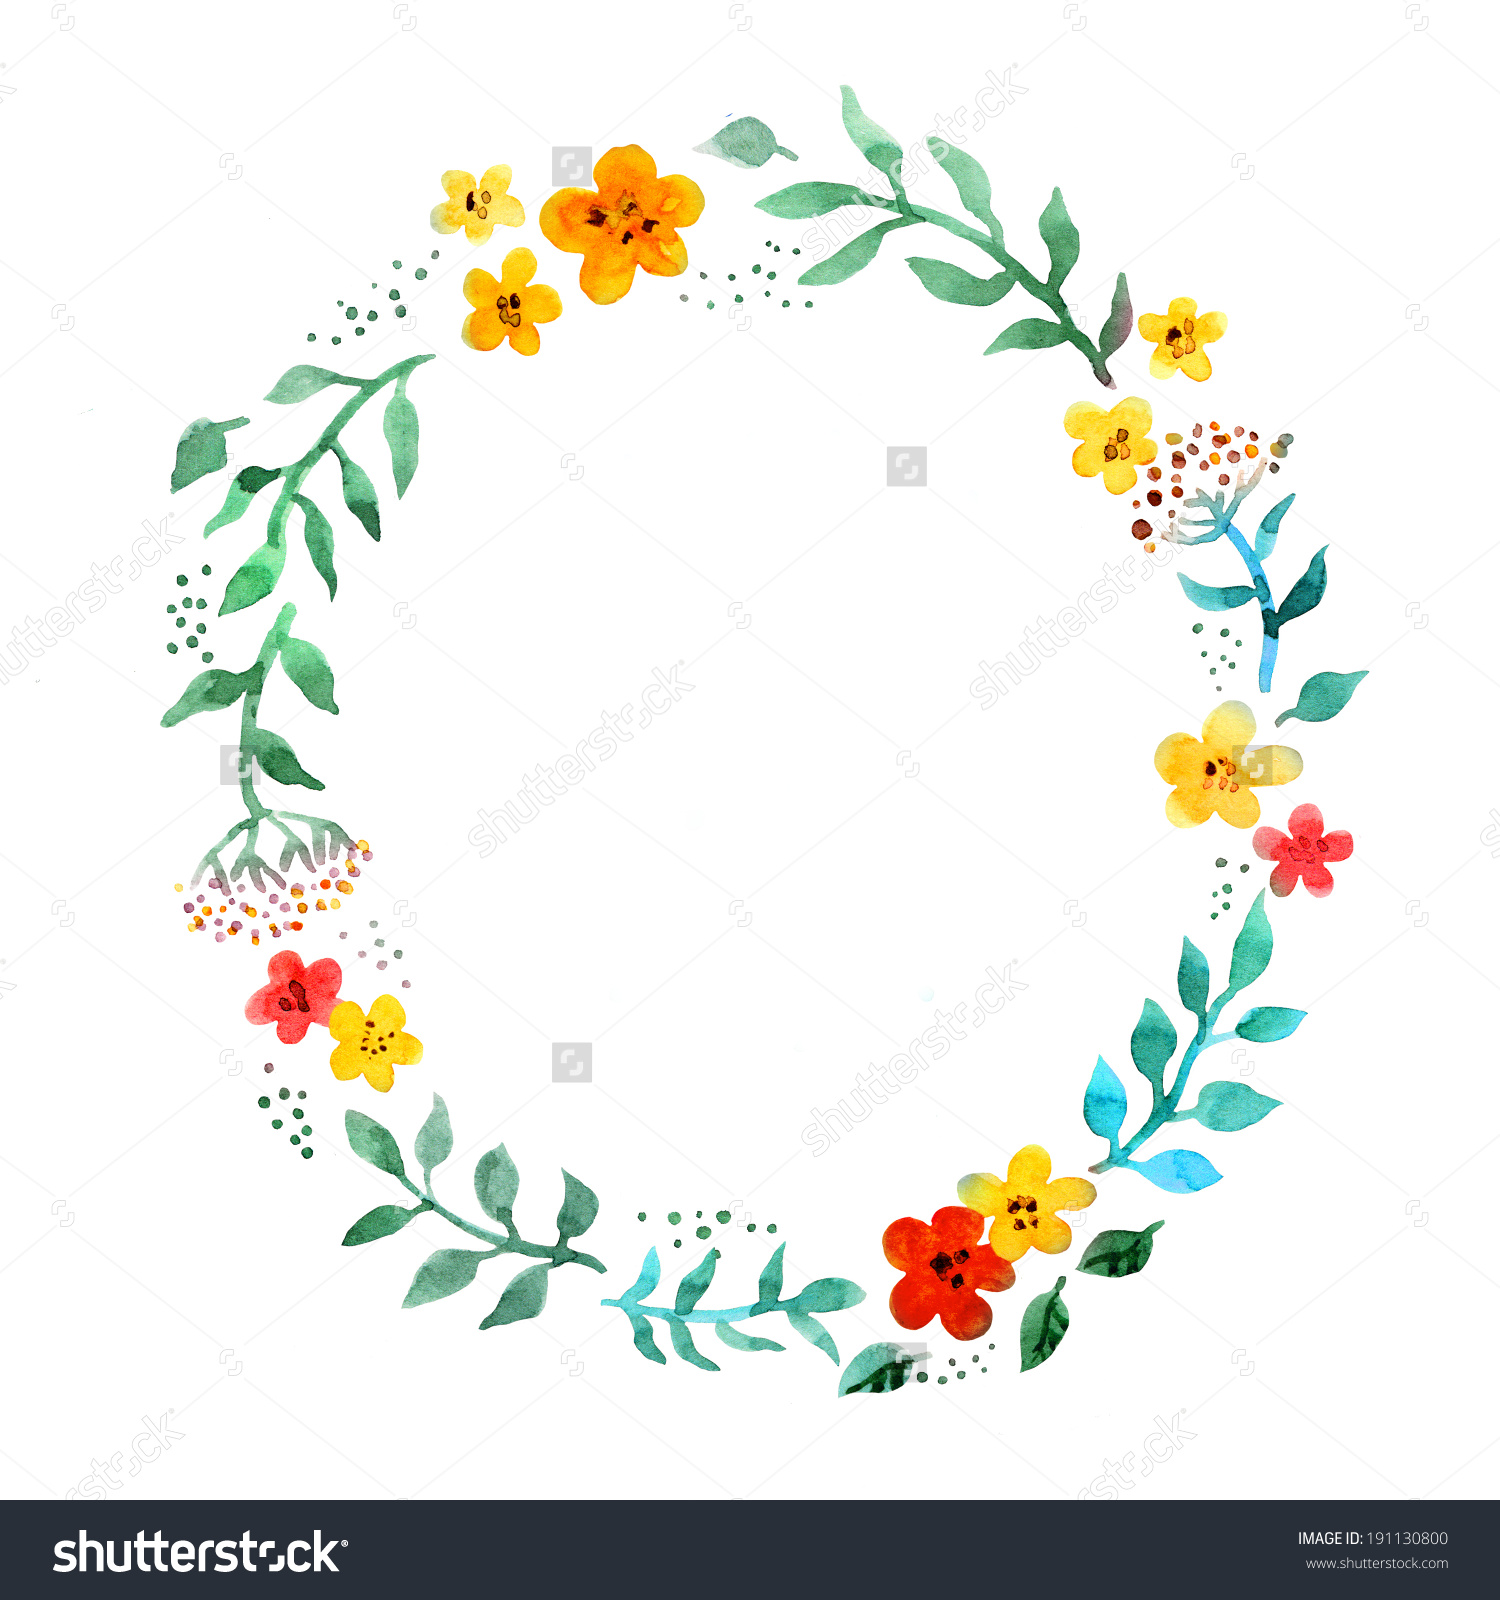 Flower Circle Drawing on Simple Shapes Coloring Pages